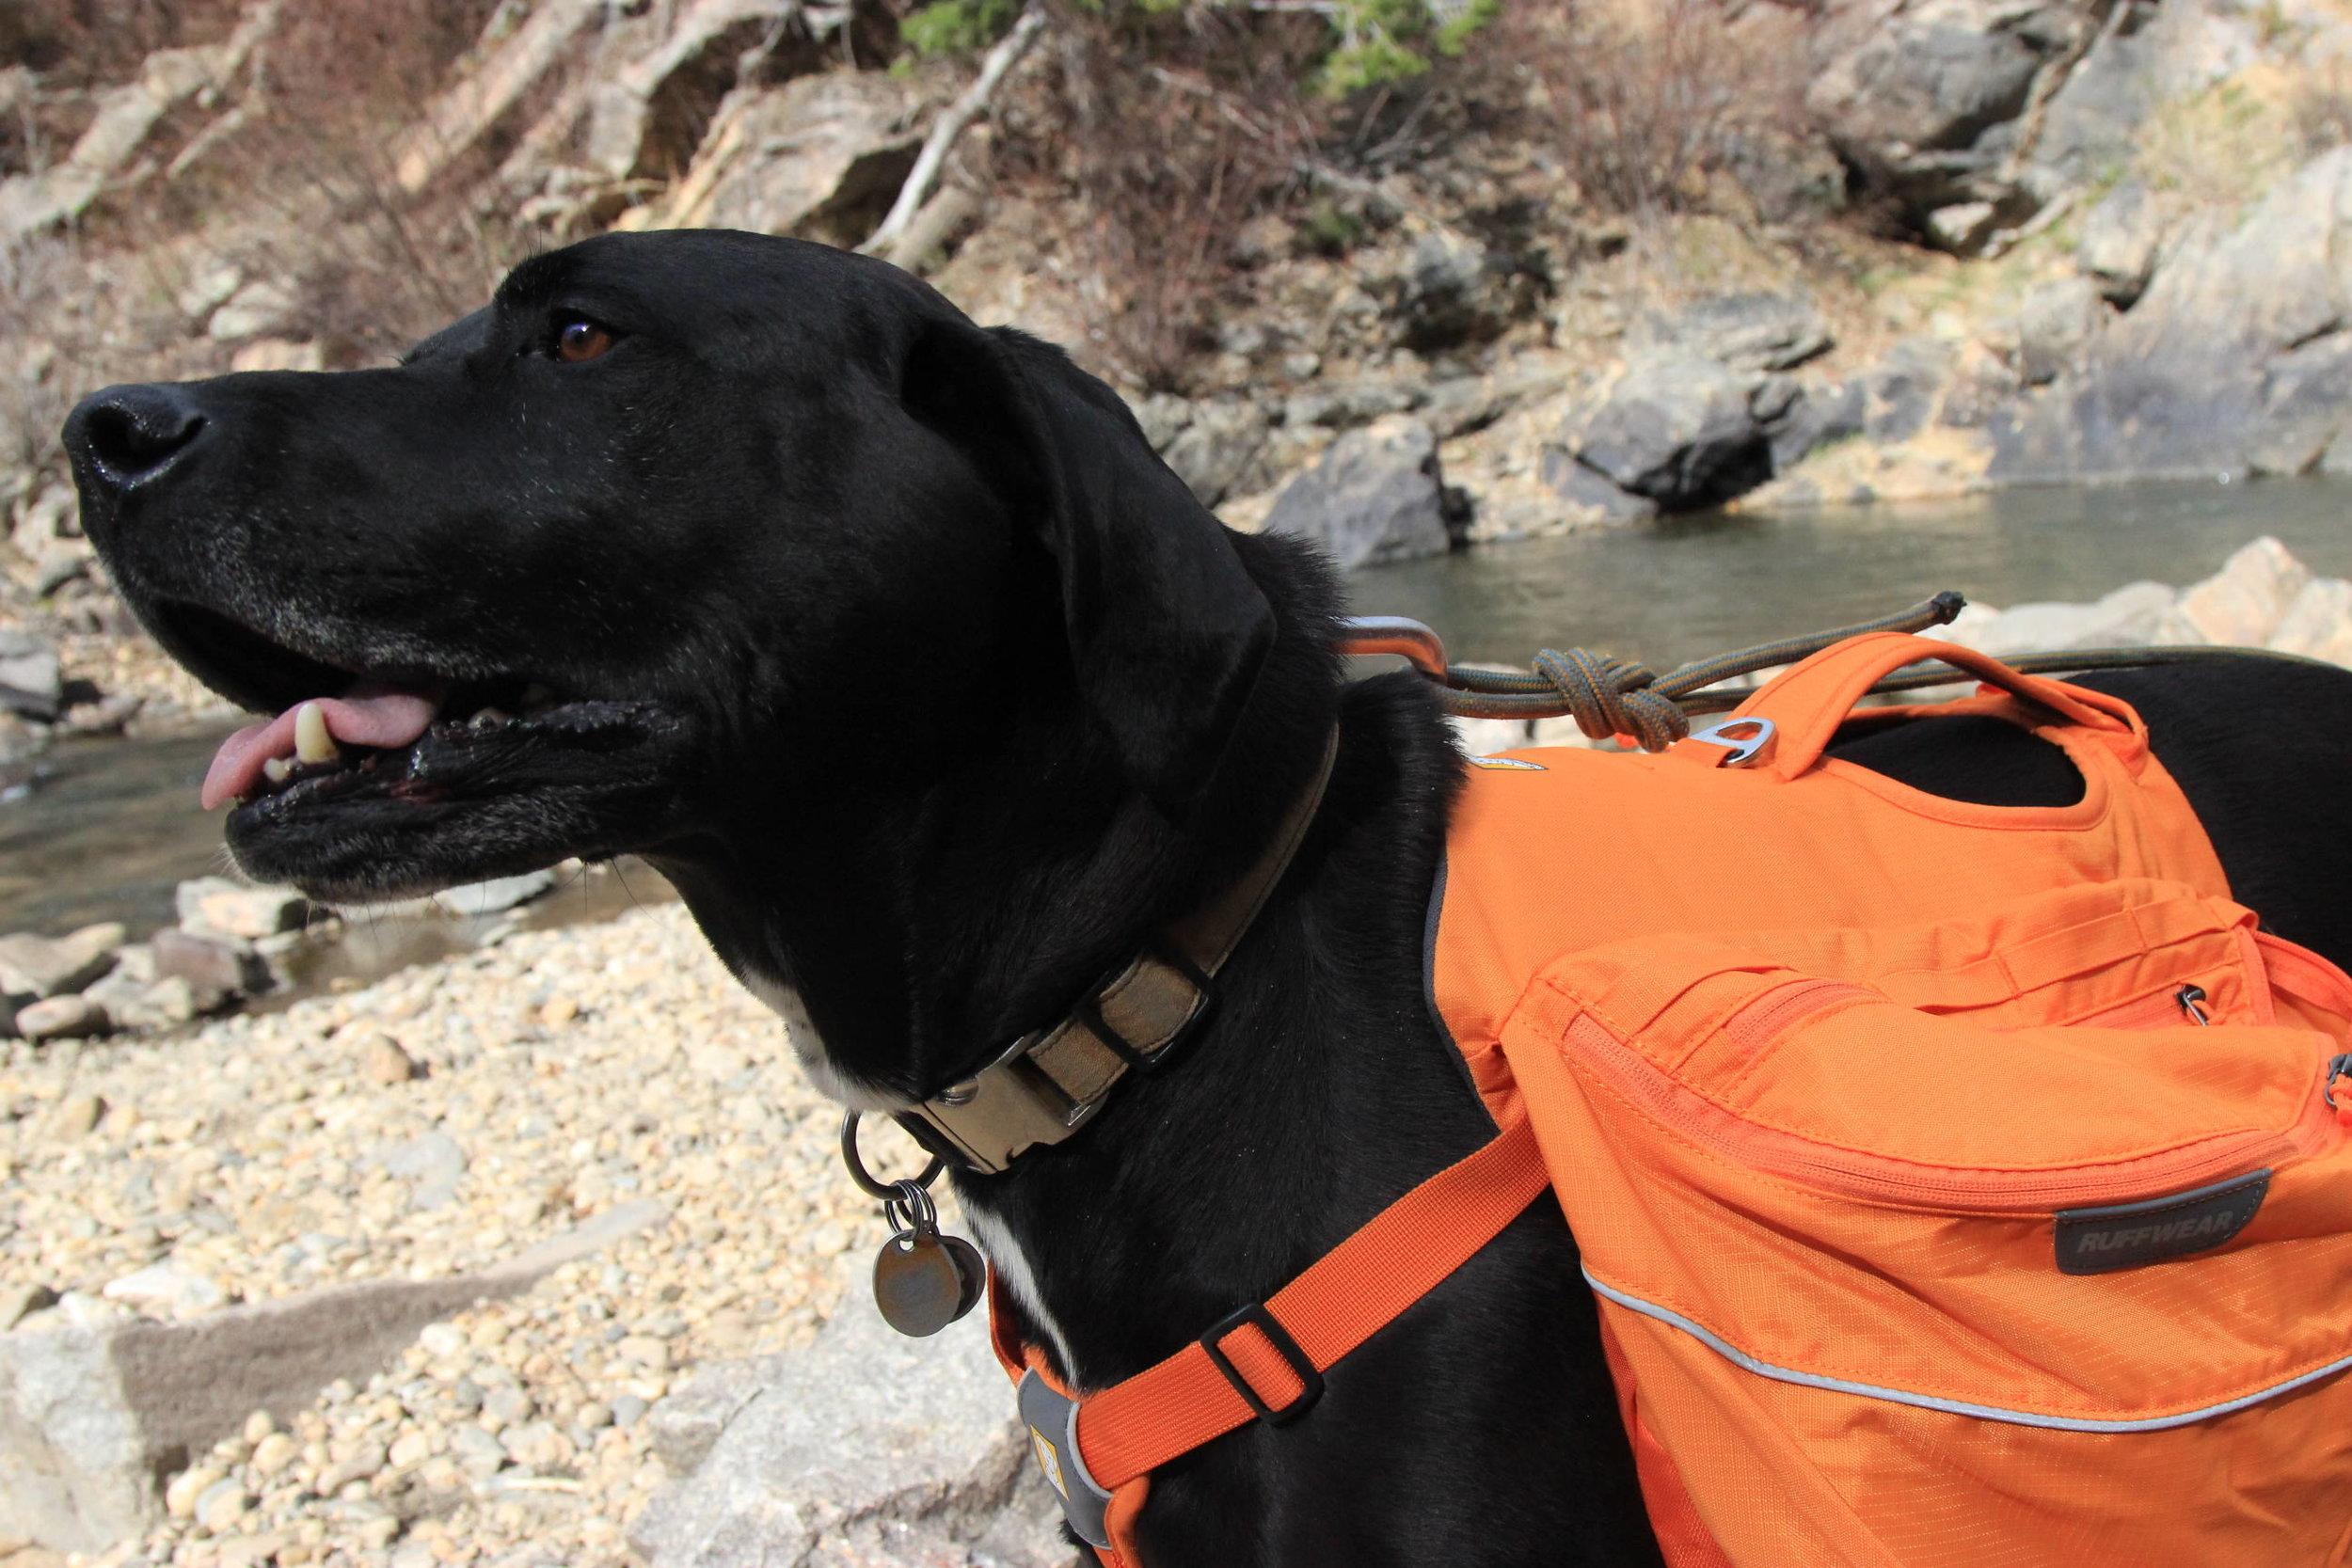 Champ, the author's dog, wearing one of the dog packs we tested.   Photo courtesy Josette Deschambeault.